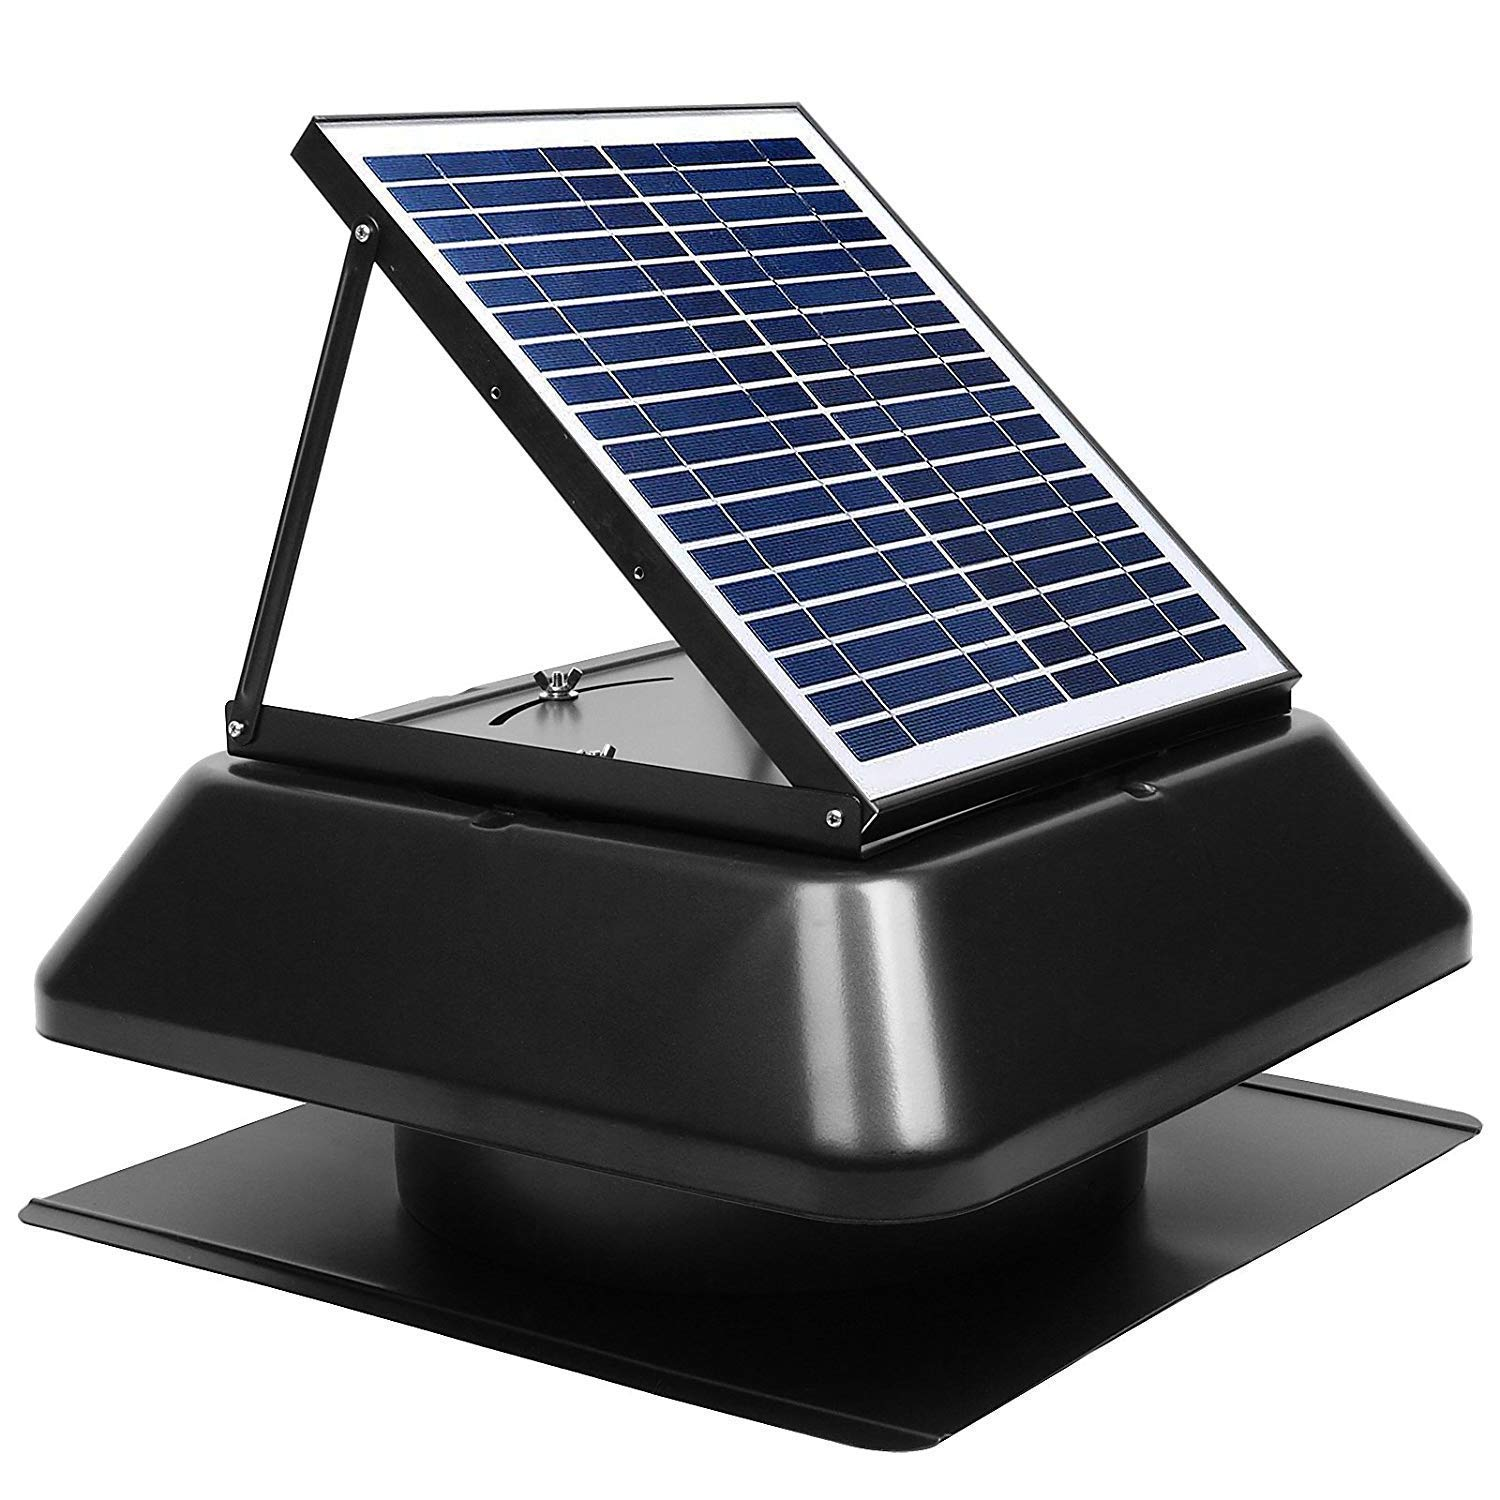 GBGS Solar Attic Fan Surface Mount 1750 CFM, IP68 Brushless DC Motor,  Adjustable Panel, 14 inches 7 Fan Blades, 40db, Double Rust Free  Anti-Aging, Easy Install, Size 23.6X23.6X9.8 in, 29 lb/Unit - -Amazon.com